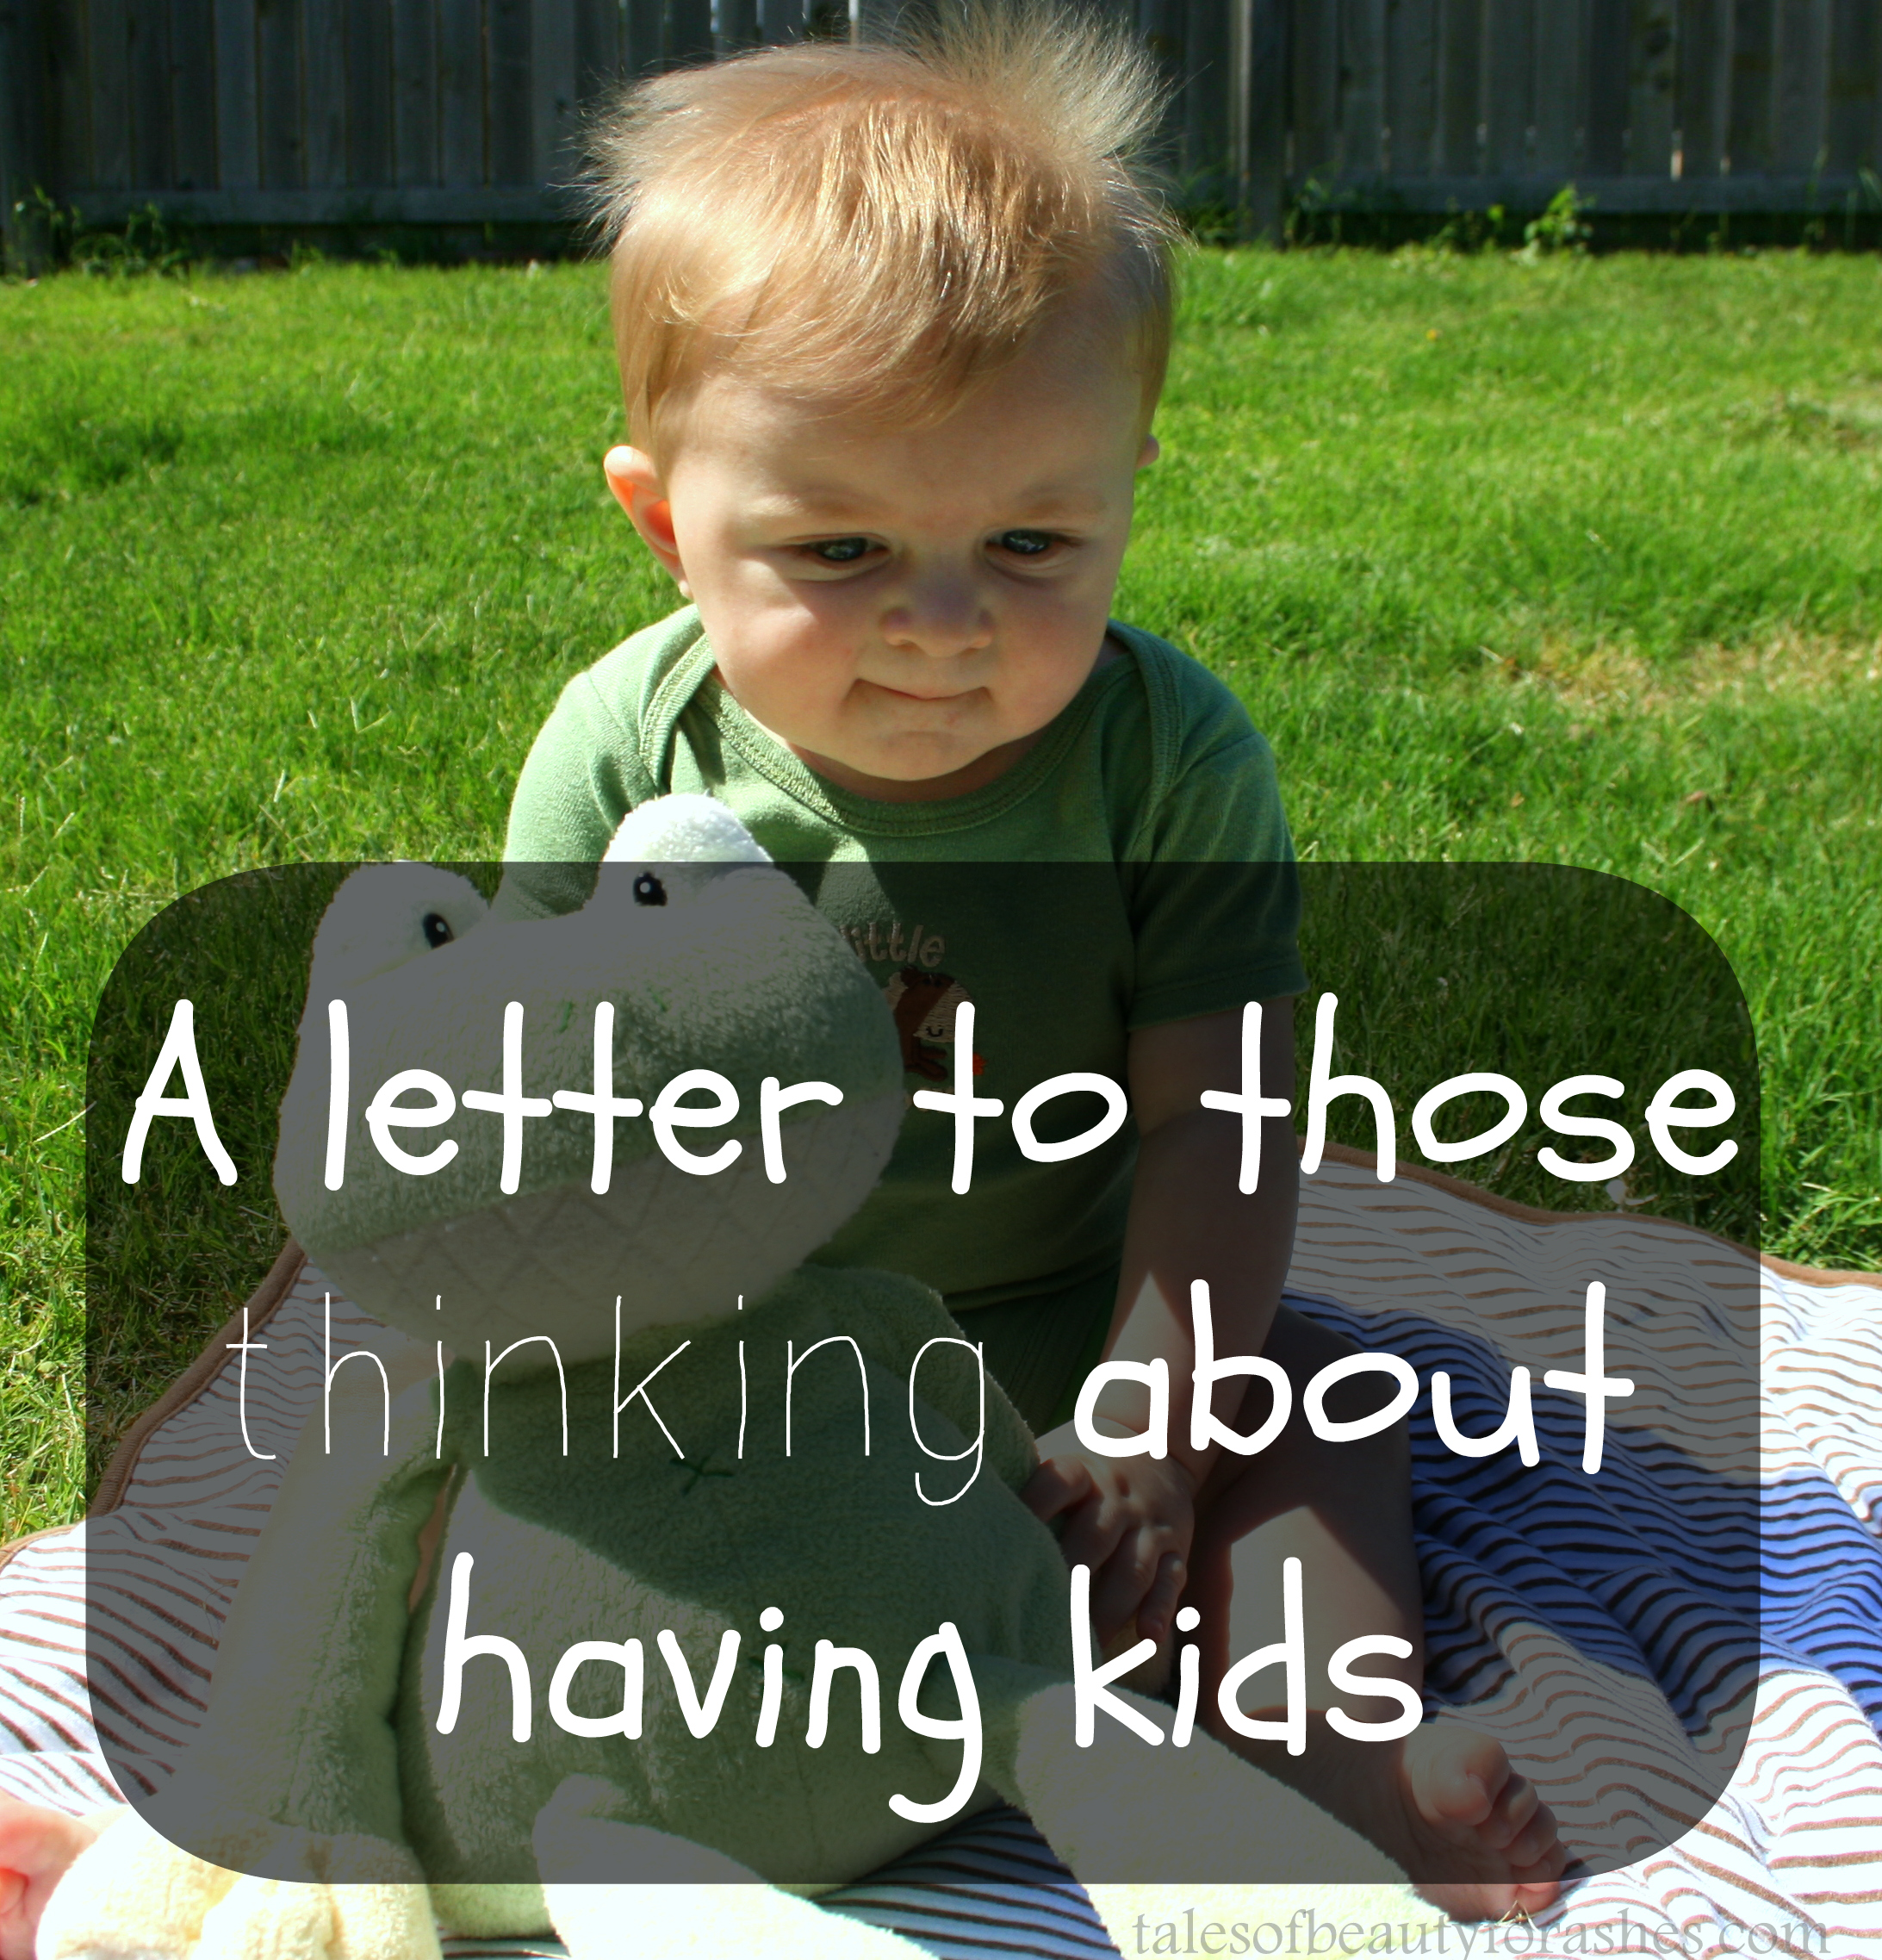 a letter to those thinking about having kids